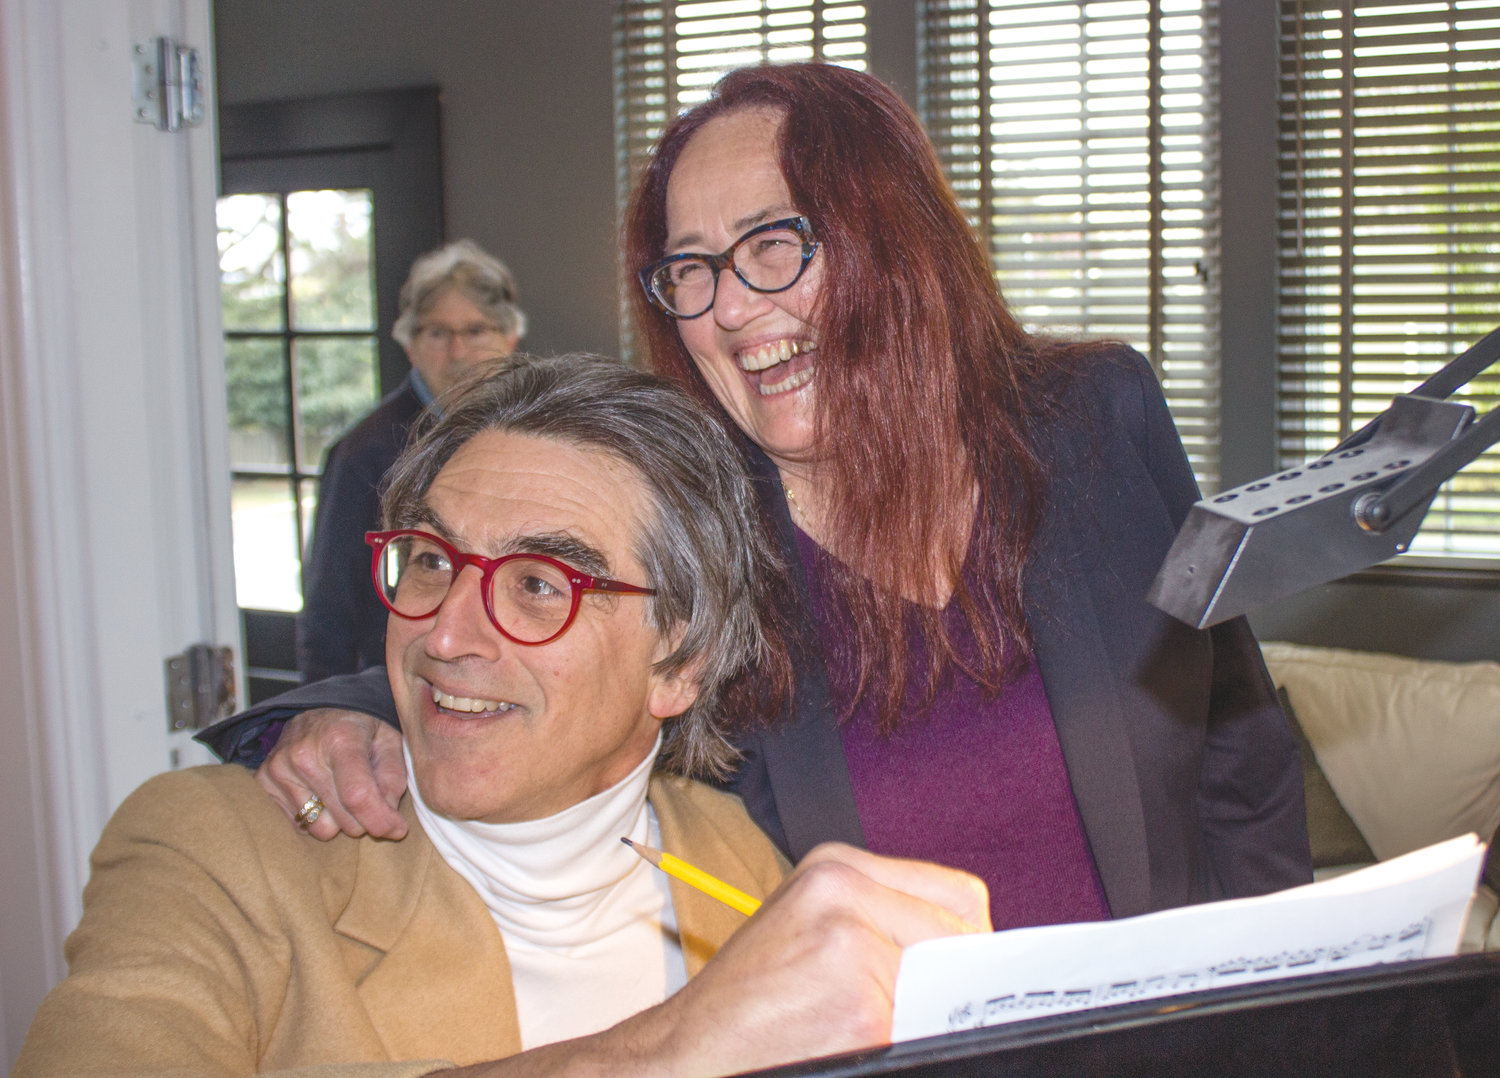 Emmy award winners Catherine Ryan and Gary Weimberg are spending a five week residency in Port Townsend to create a musical in collaboration with local talent.